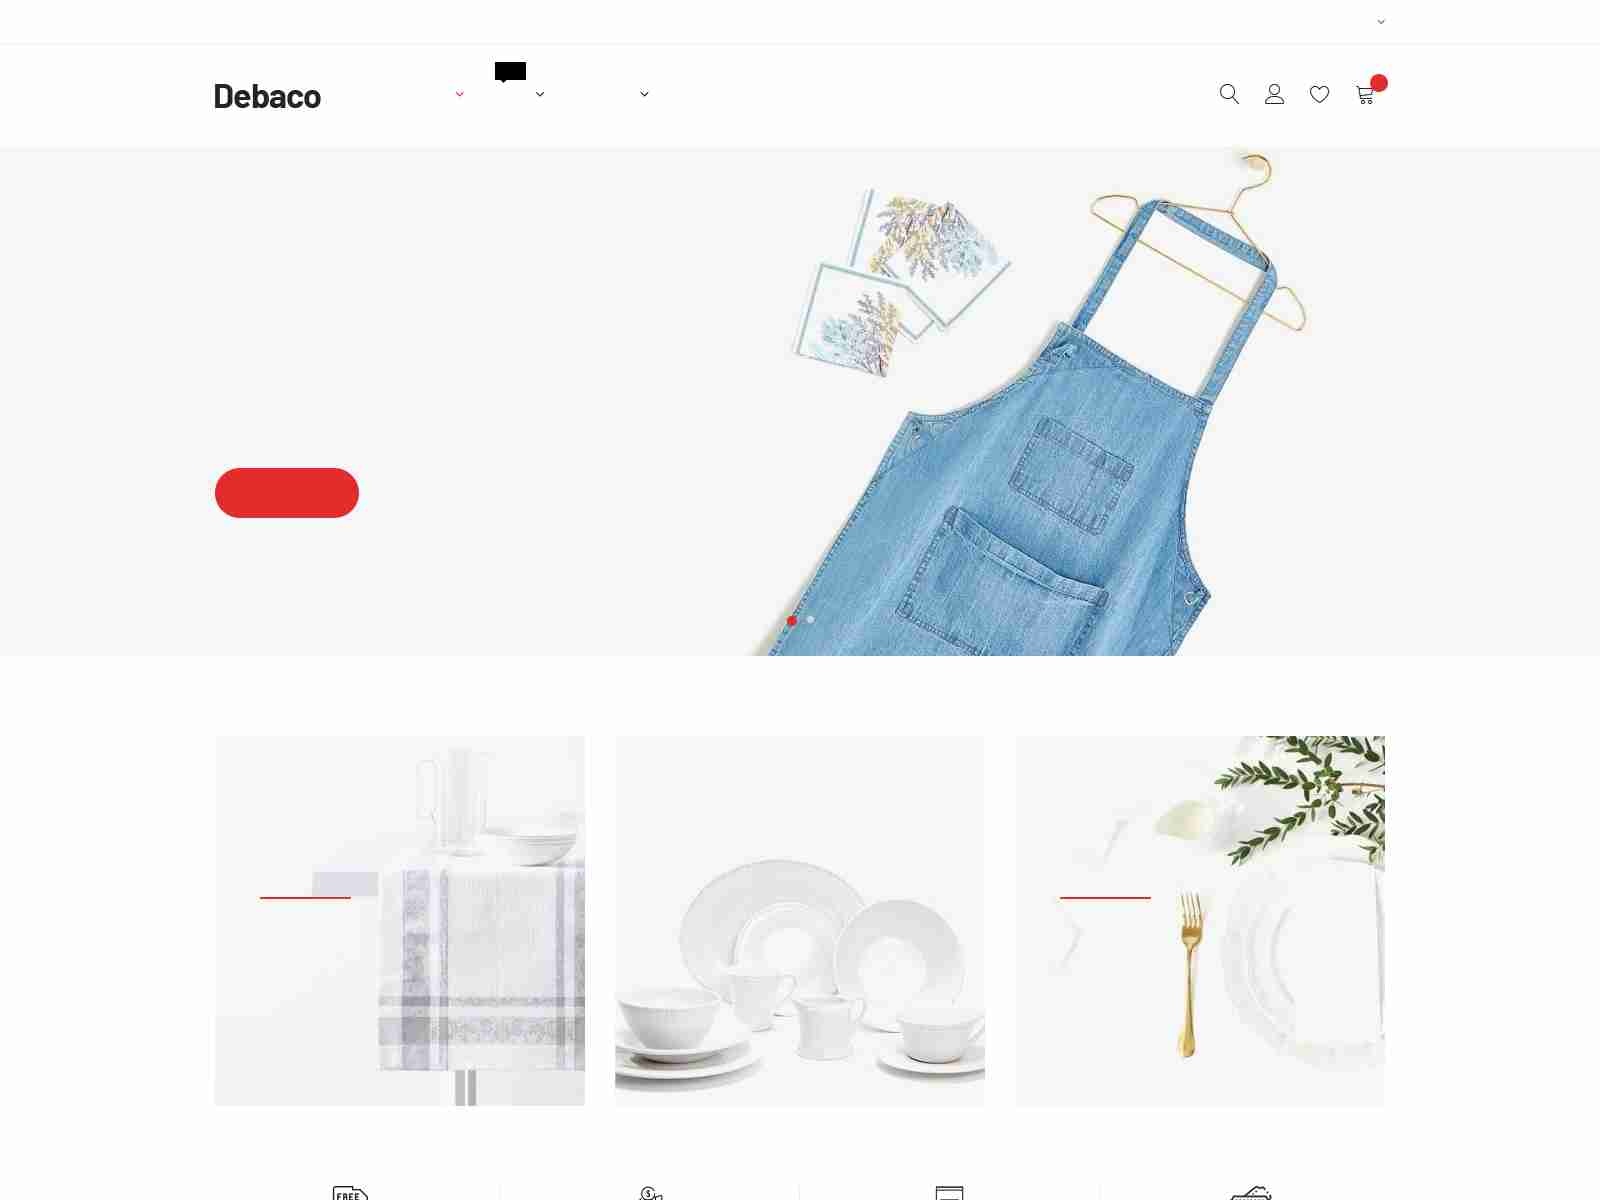 Kitchen Appliances Store Shopify Theme - Debaco